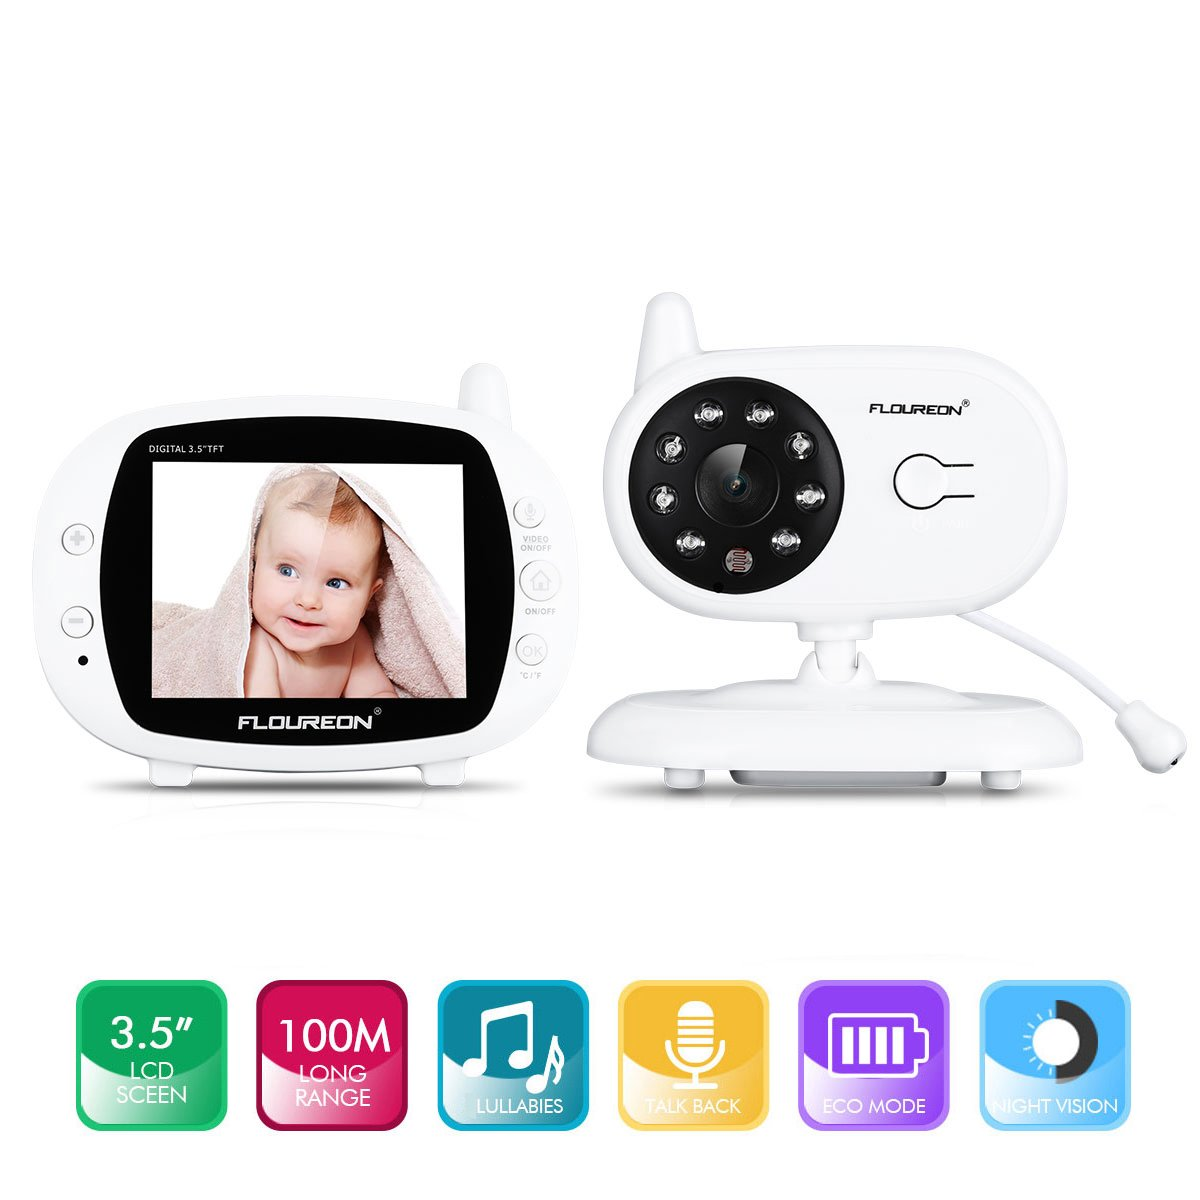 FLOUREON Video Baby Monitor Wireless Camera for Security, 3.5\